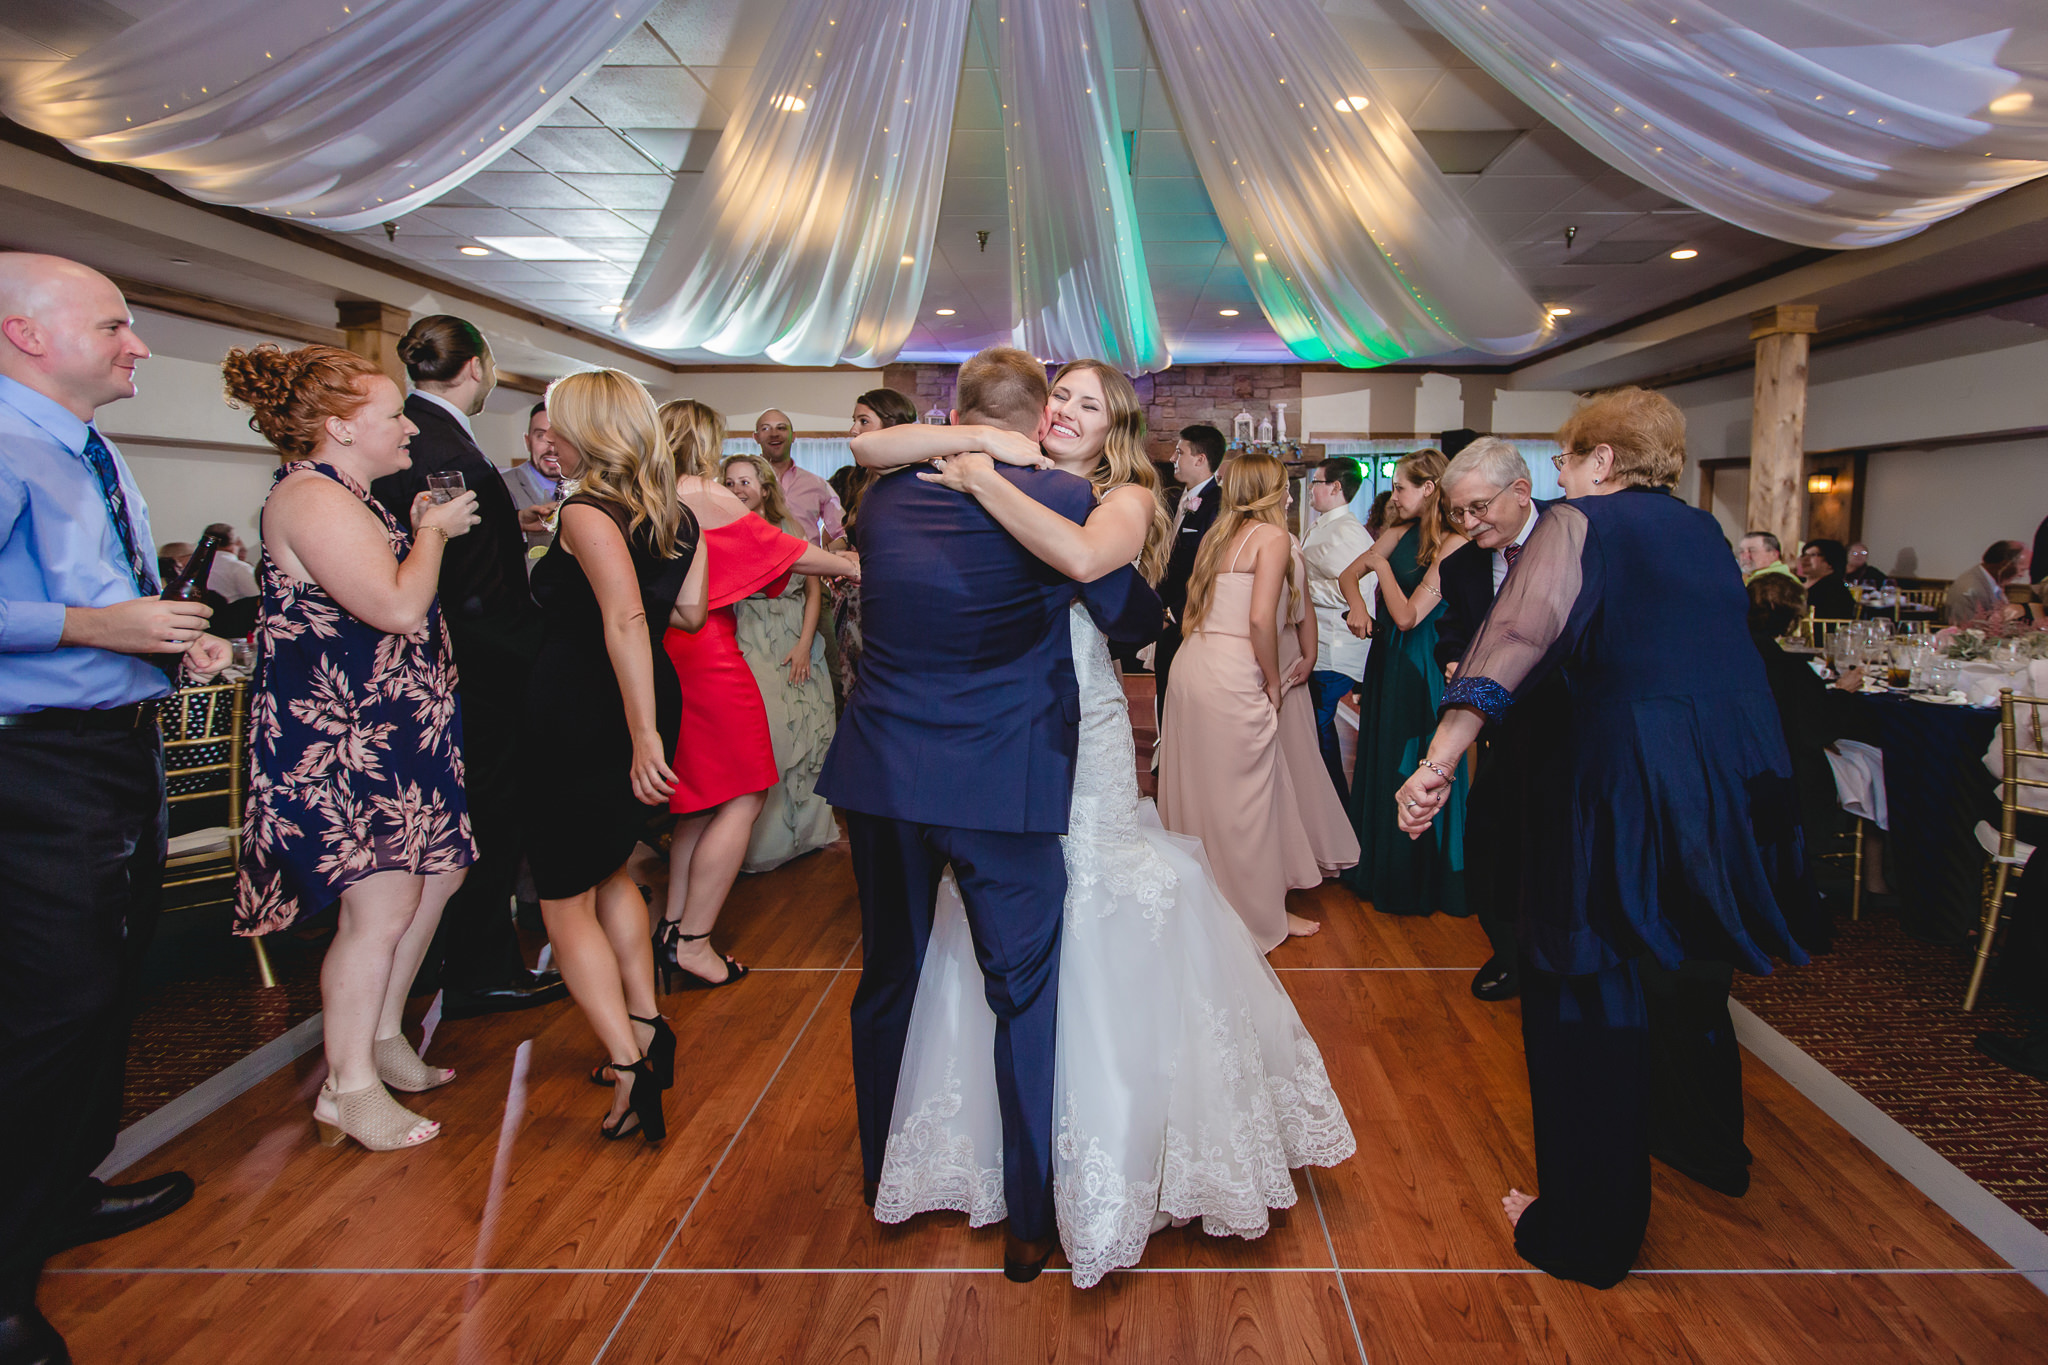 Bride and groom dance with guests at their Hidden Valley Resort wedding reception